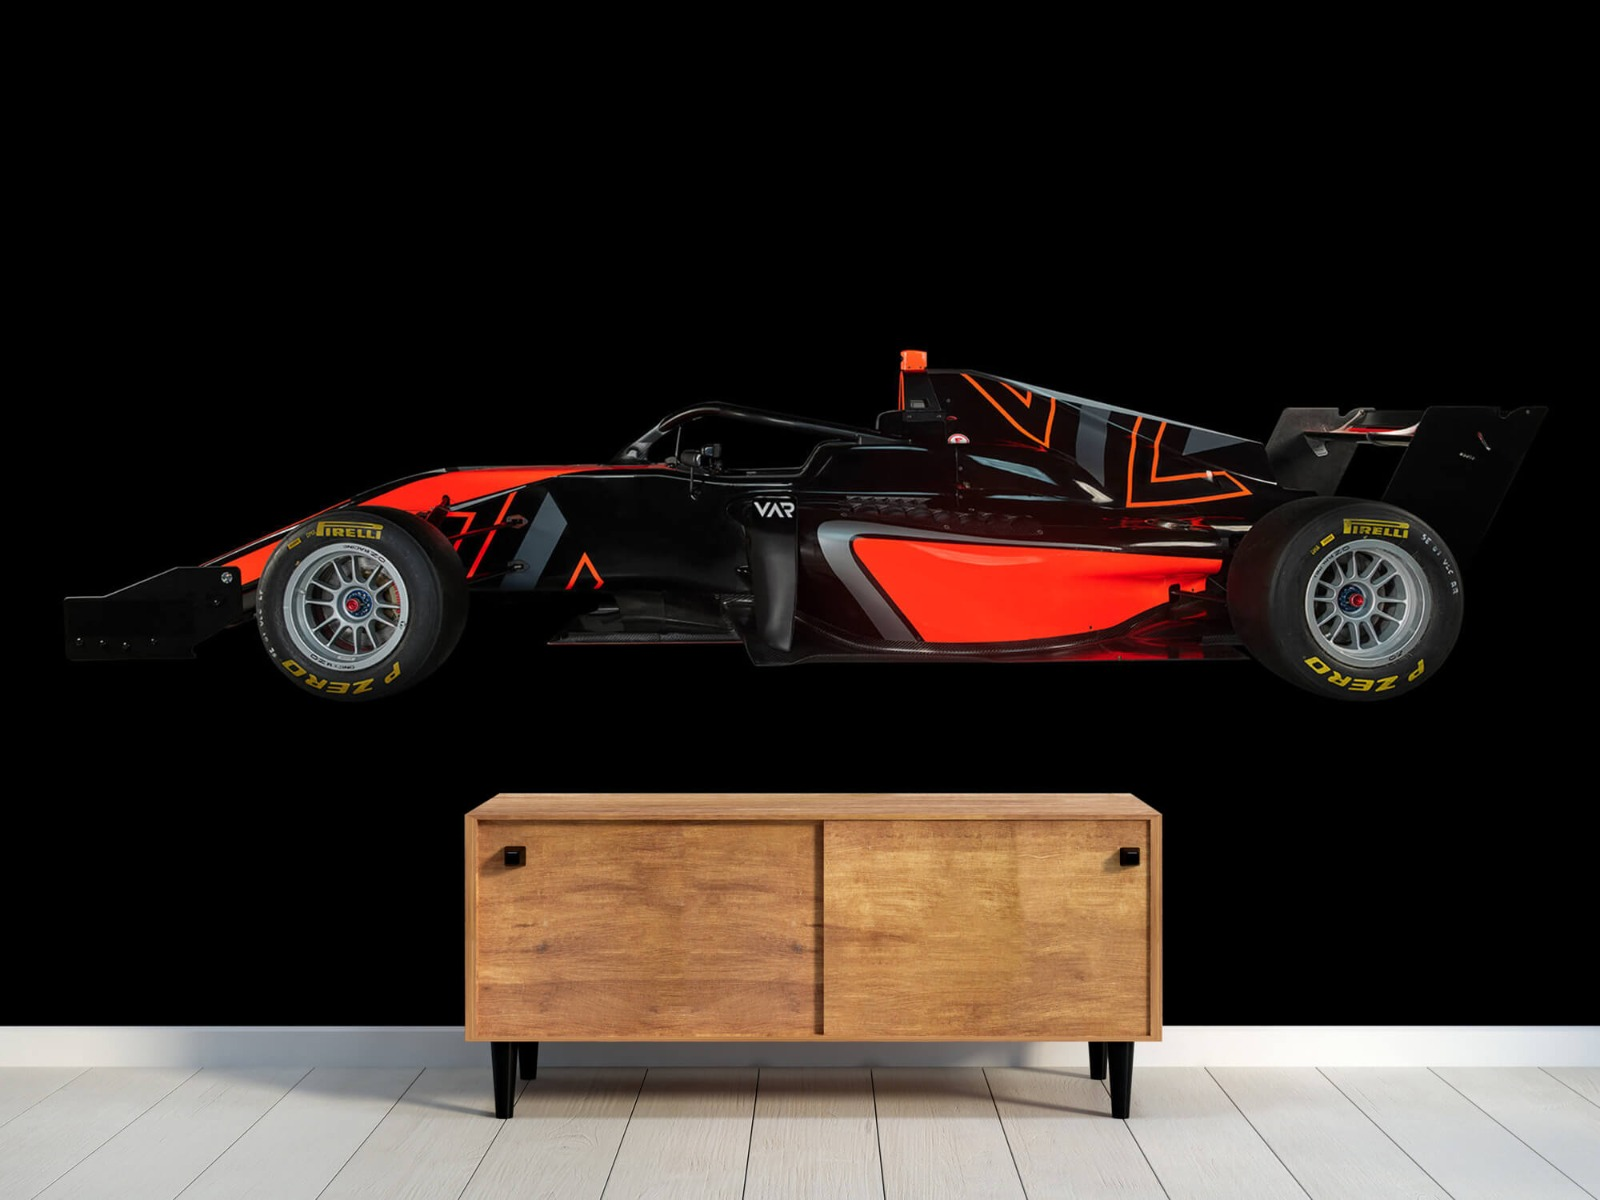 Sportauto's - Formule 3 - Lower side view - dark - Tienerkamer 10